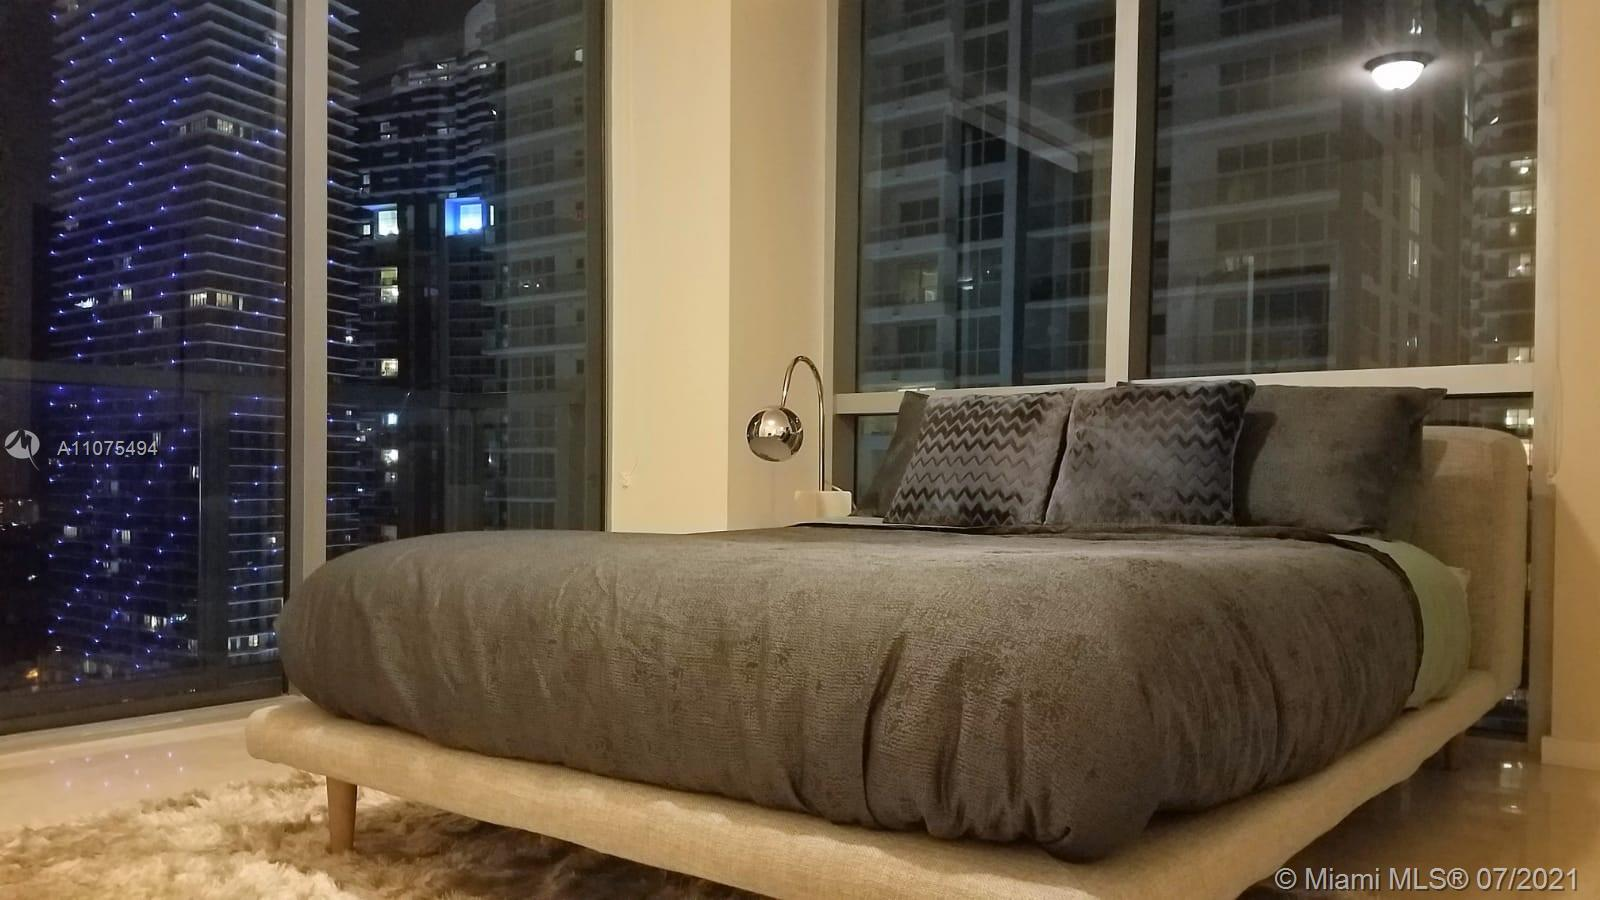 Amazing Corner unit 2 bedrooms and 2 bathrooms in the heart of Brickell. One assigned parking space.